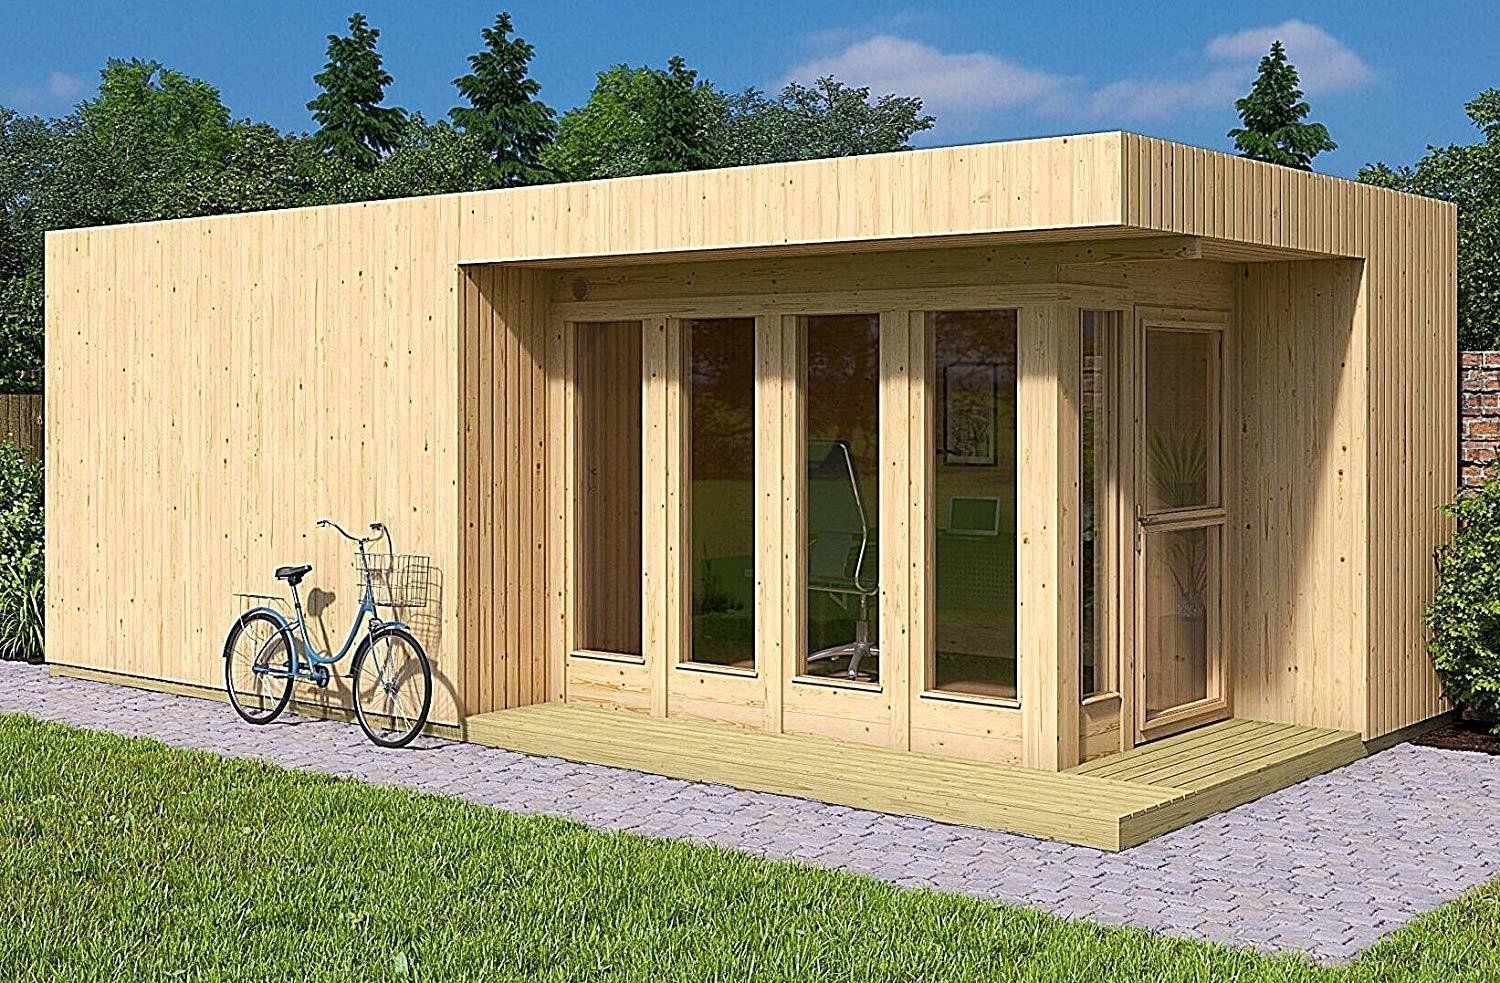 7 Tiny Homes You Can Buy On Amazon